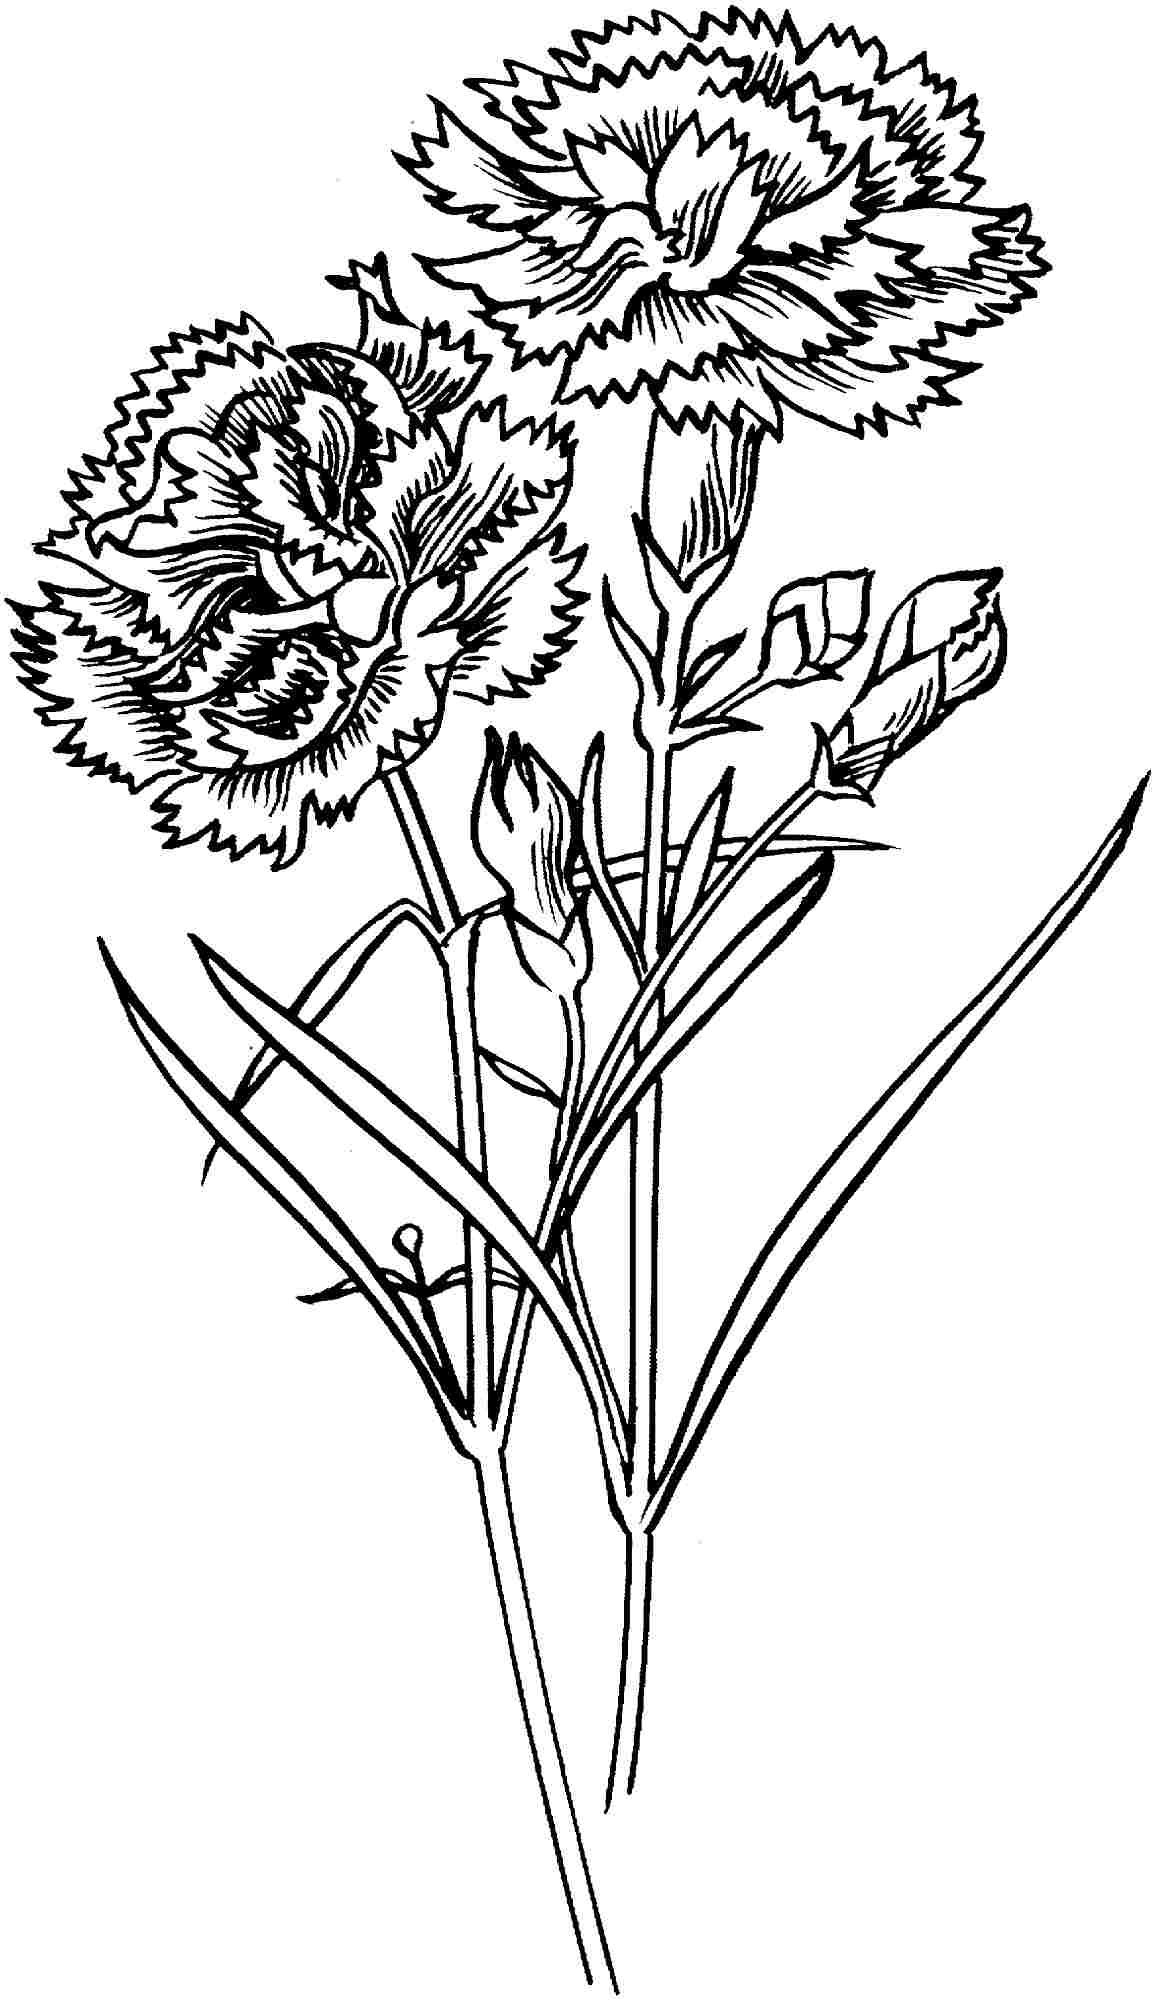 carnation coloring page carnation 39chomley farran39 coloring page free printable coloring page carnation